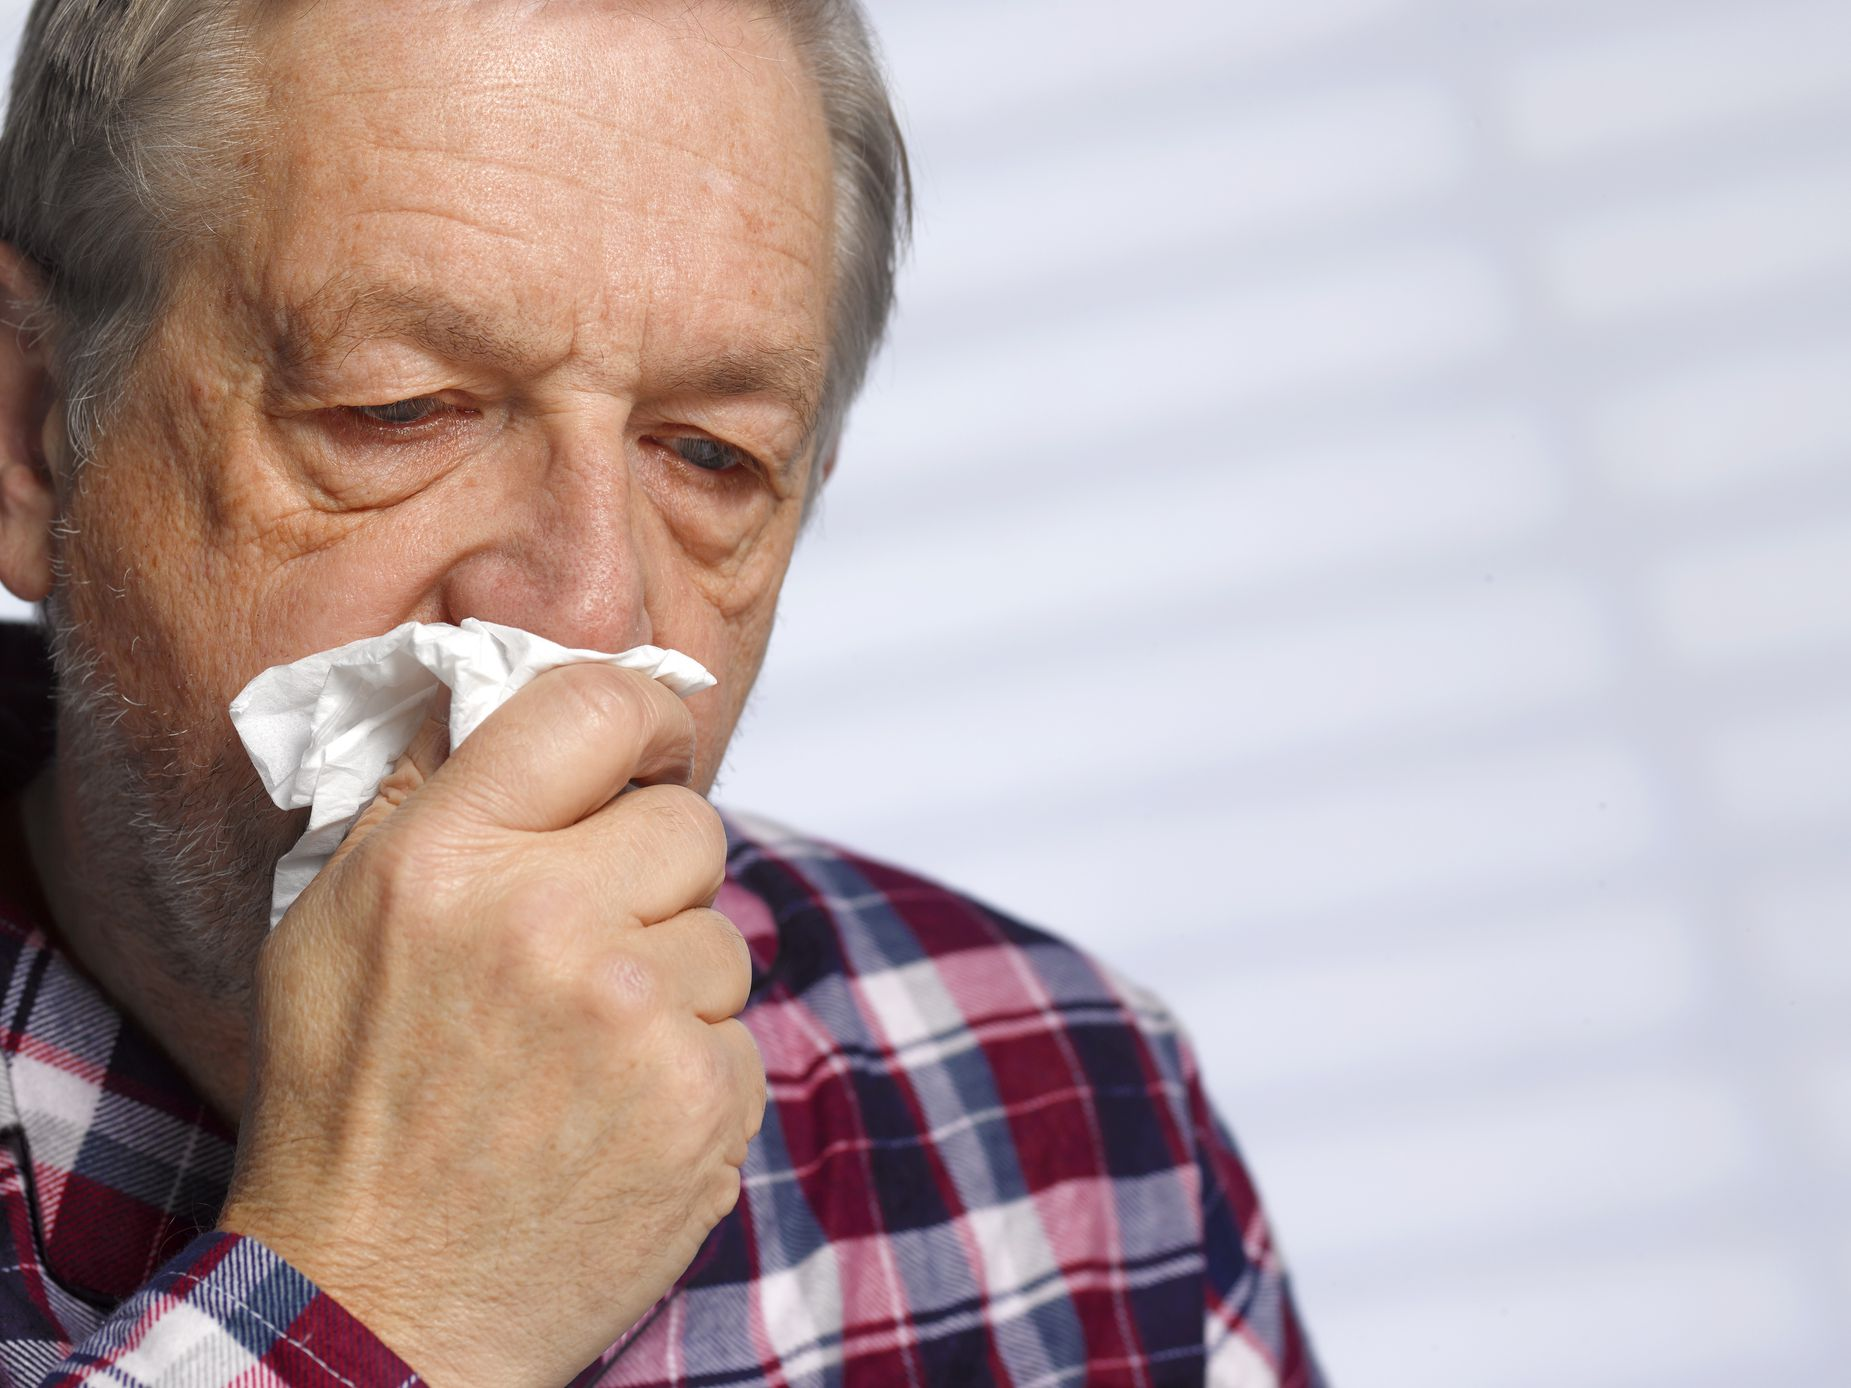 What Causes Increased Mucus Production in COPD?